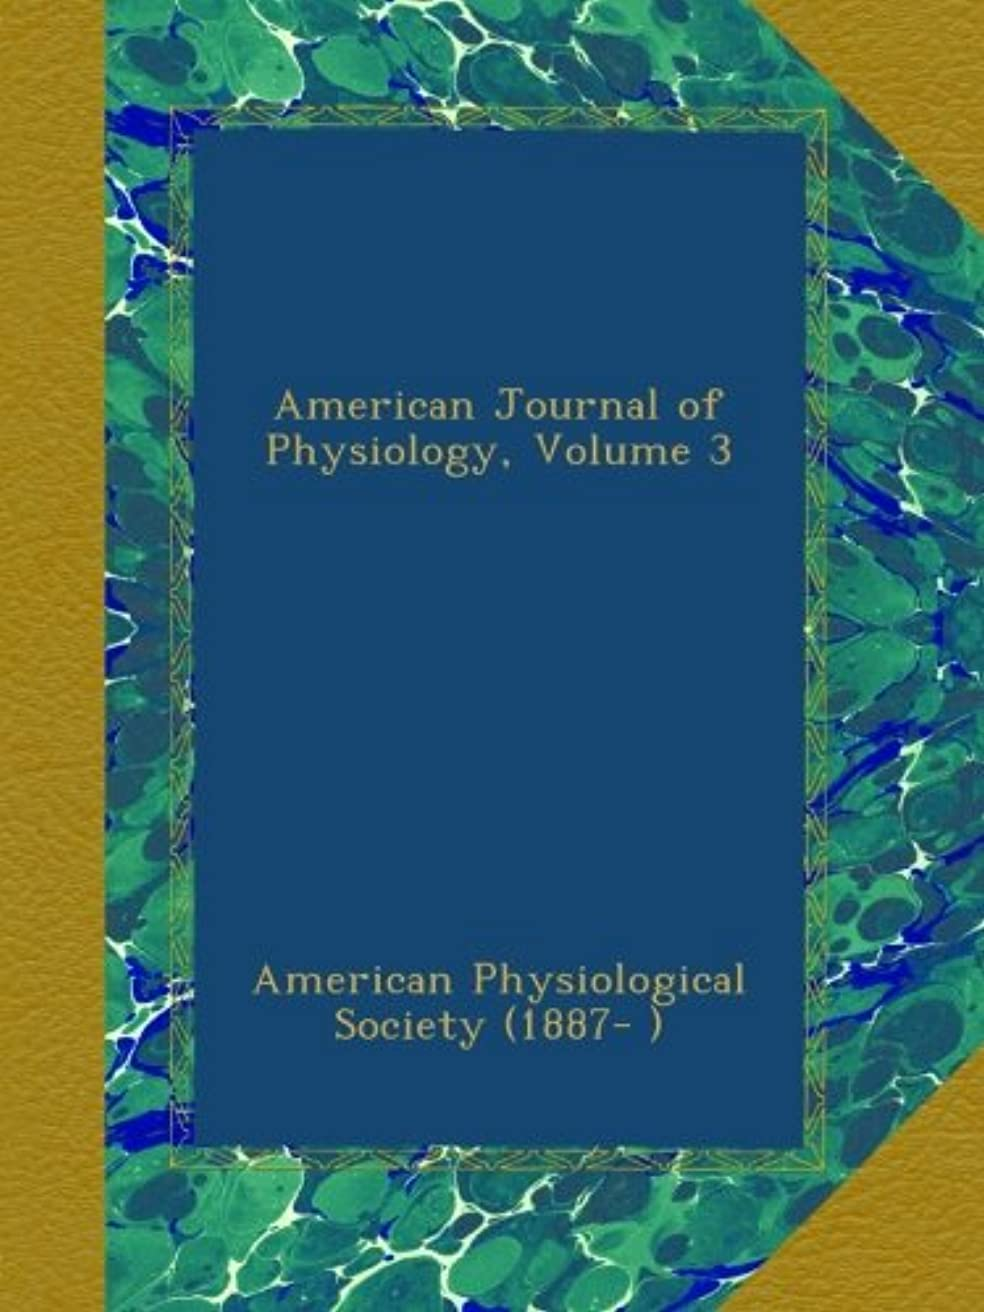 ノイズ大タヒチAmerican Journal of Physiology, Volume 3